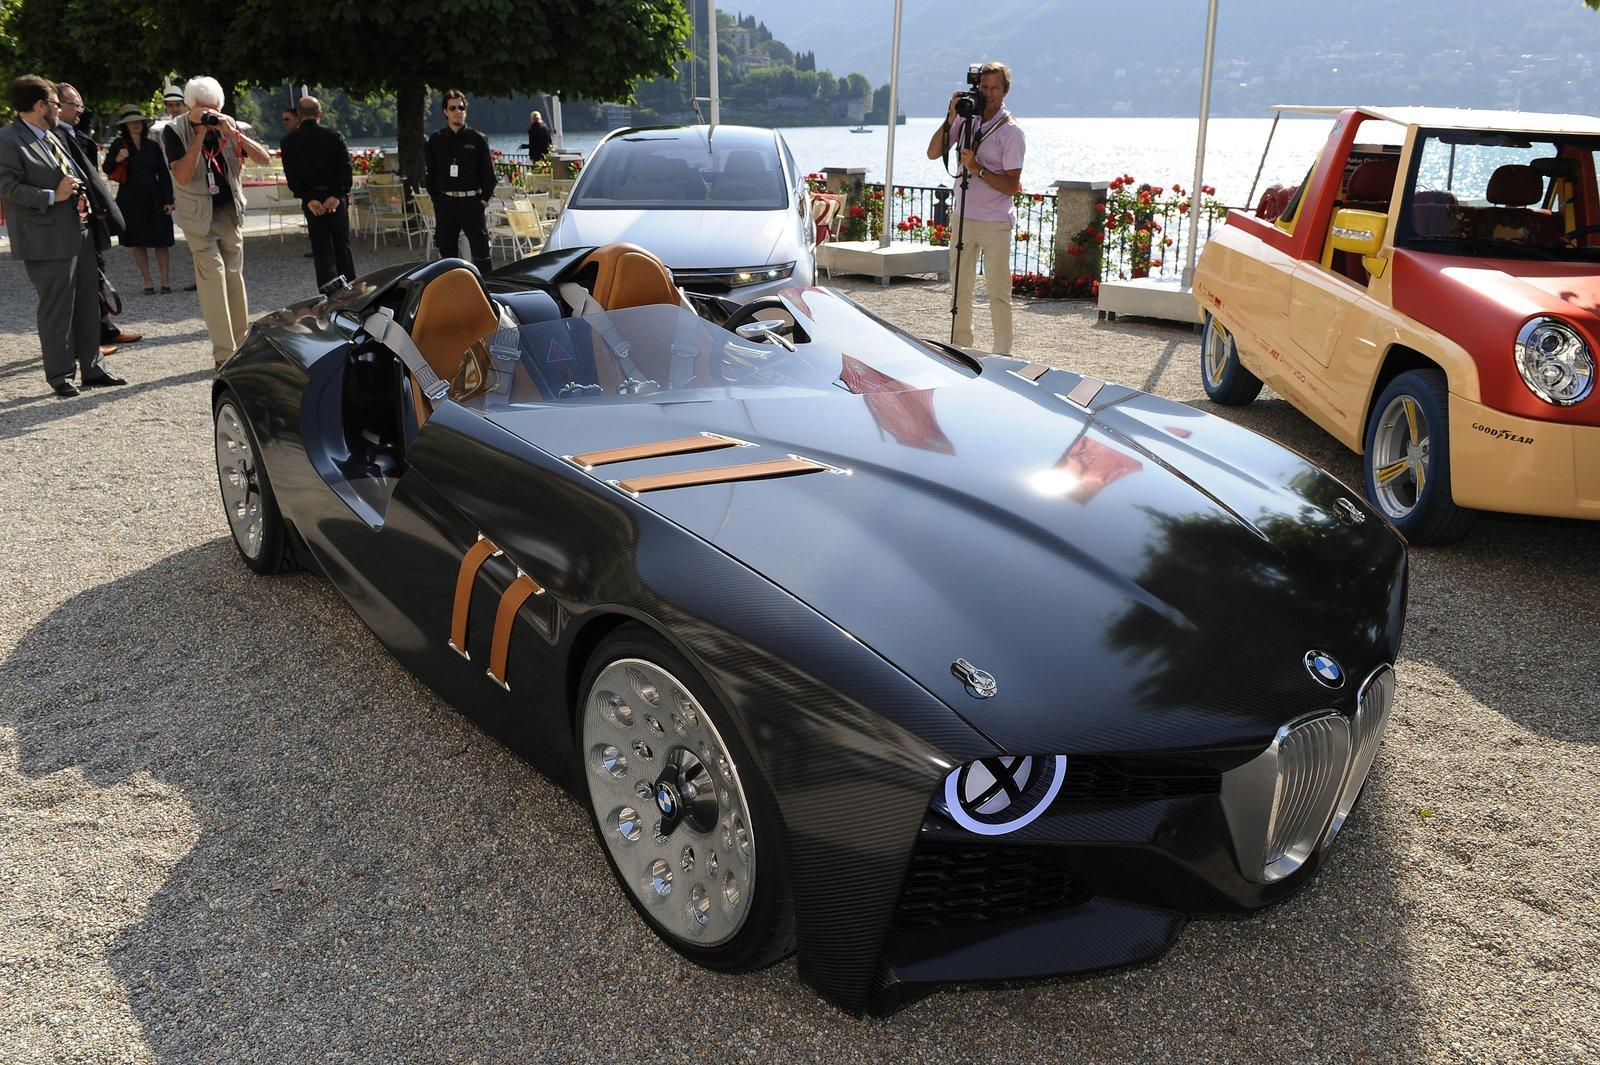 Bmw 328 Hommage For Sale Bmw-328-hommage-concept